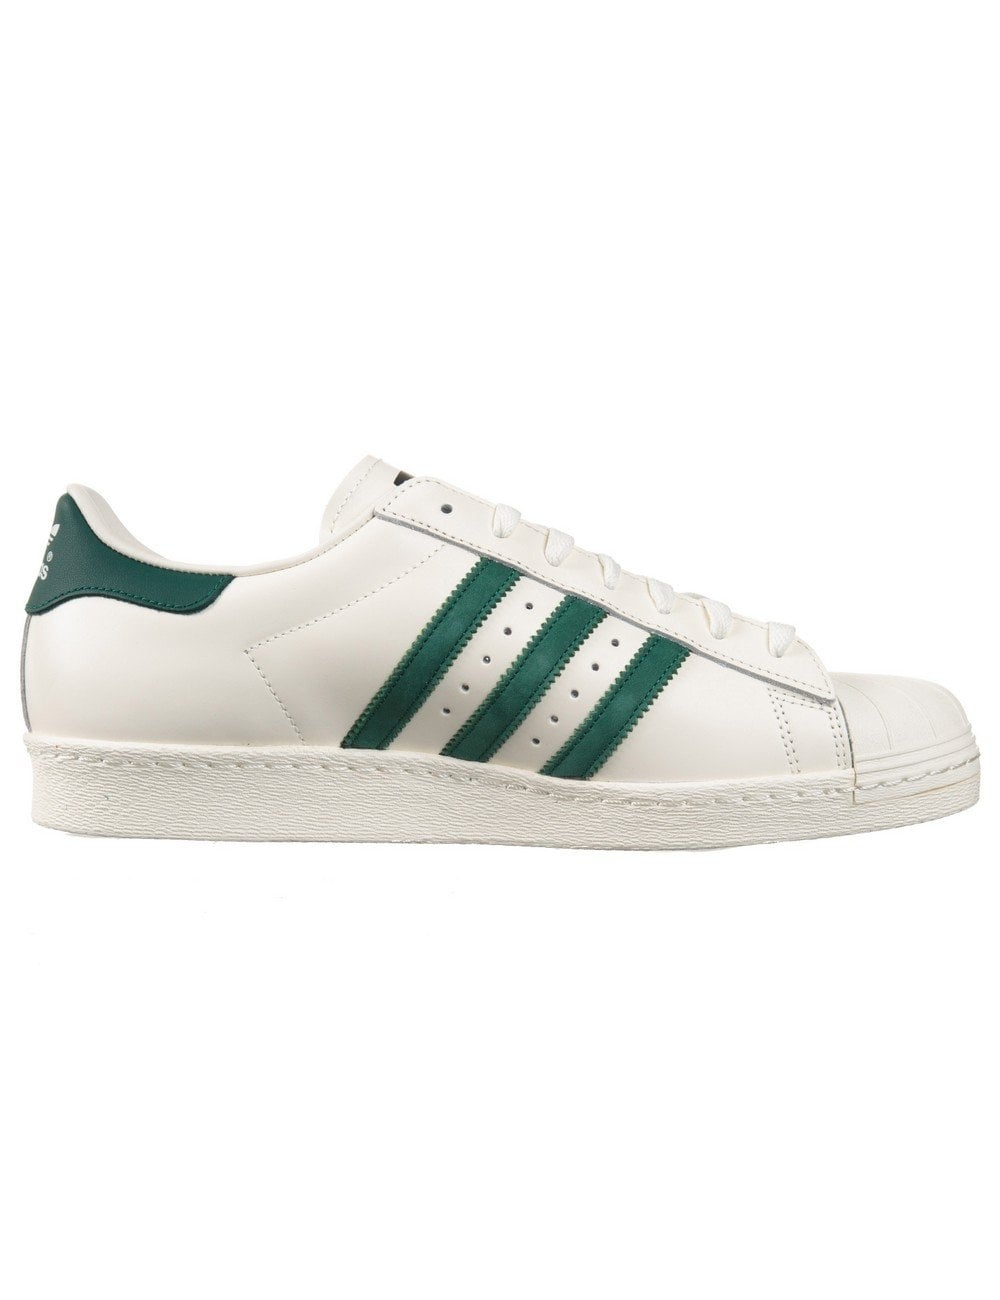 reputable site 4bc2d 5be7b Superstar 80s Delux Shoes - Vintage White/Green